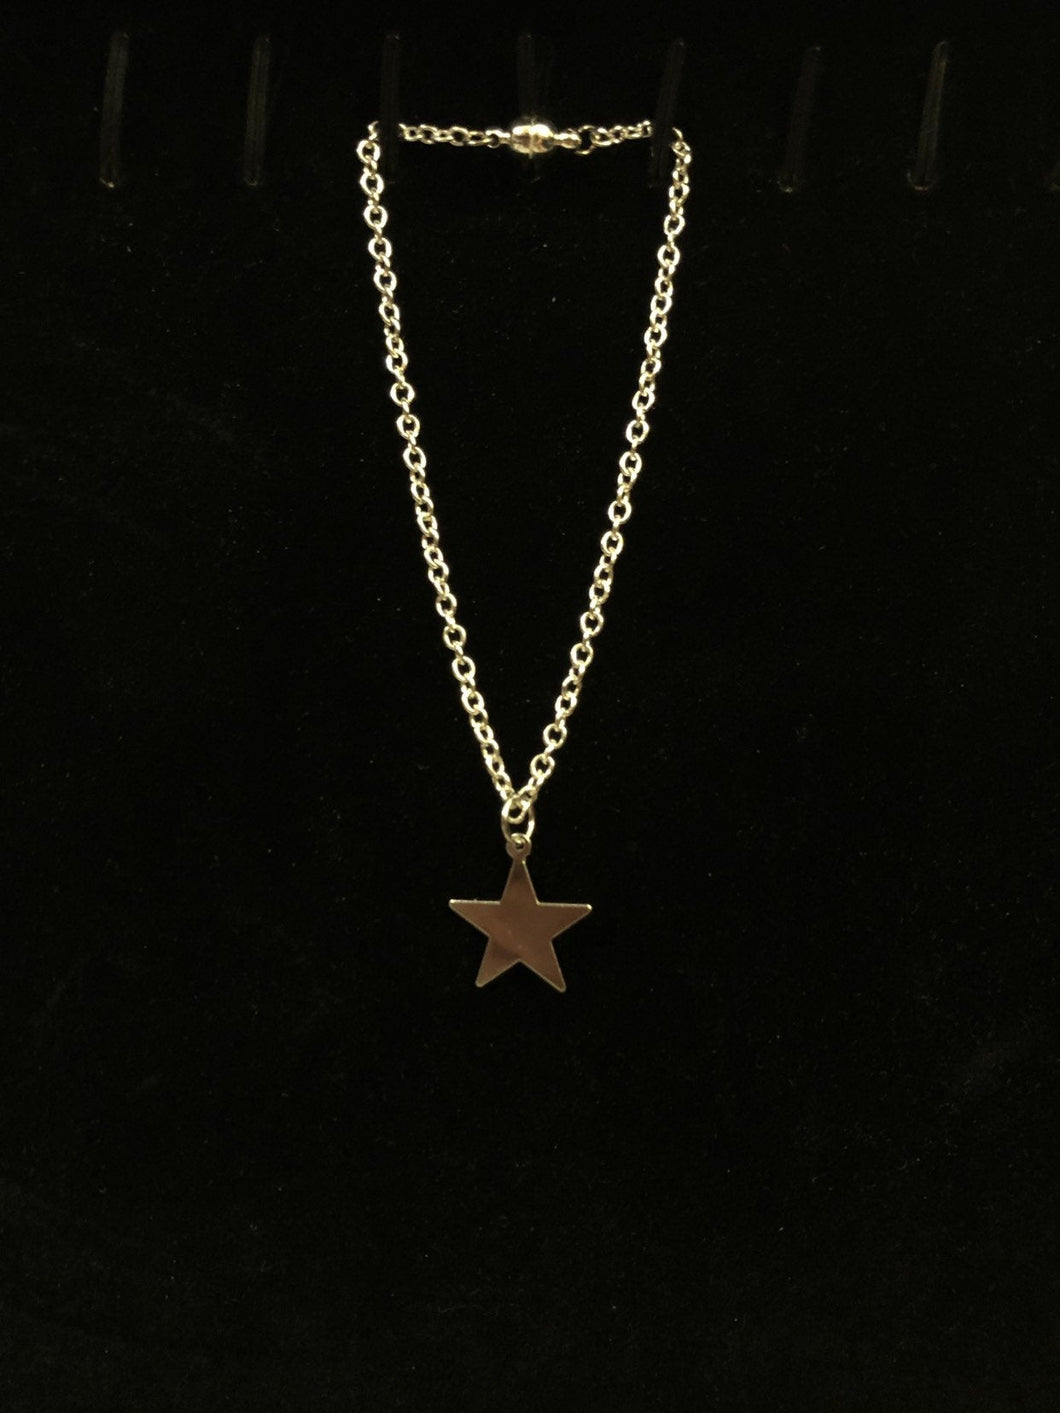 Silver Star Charm Necklace for American Girl Dolls